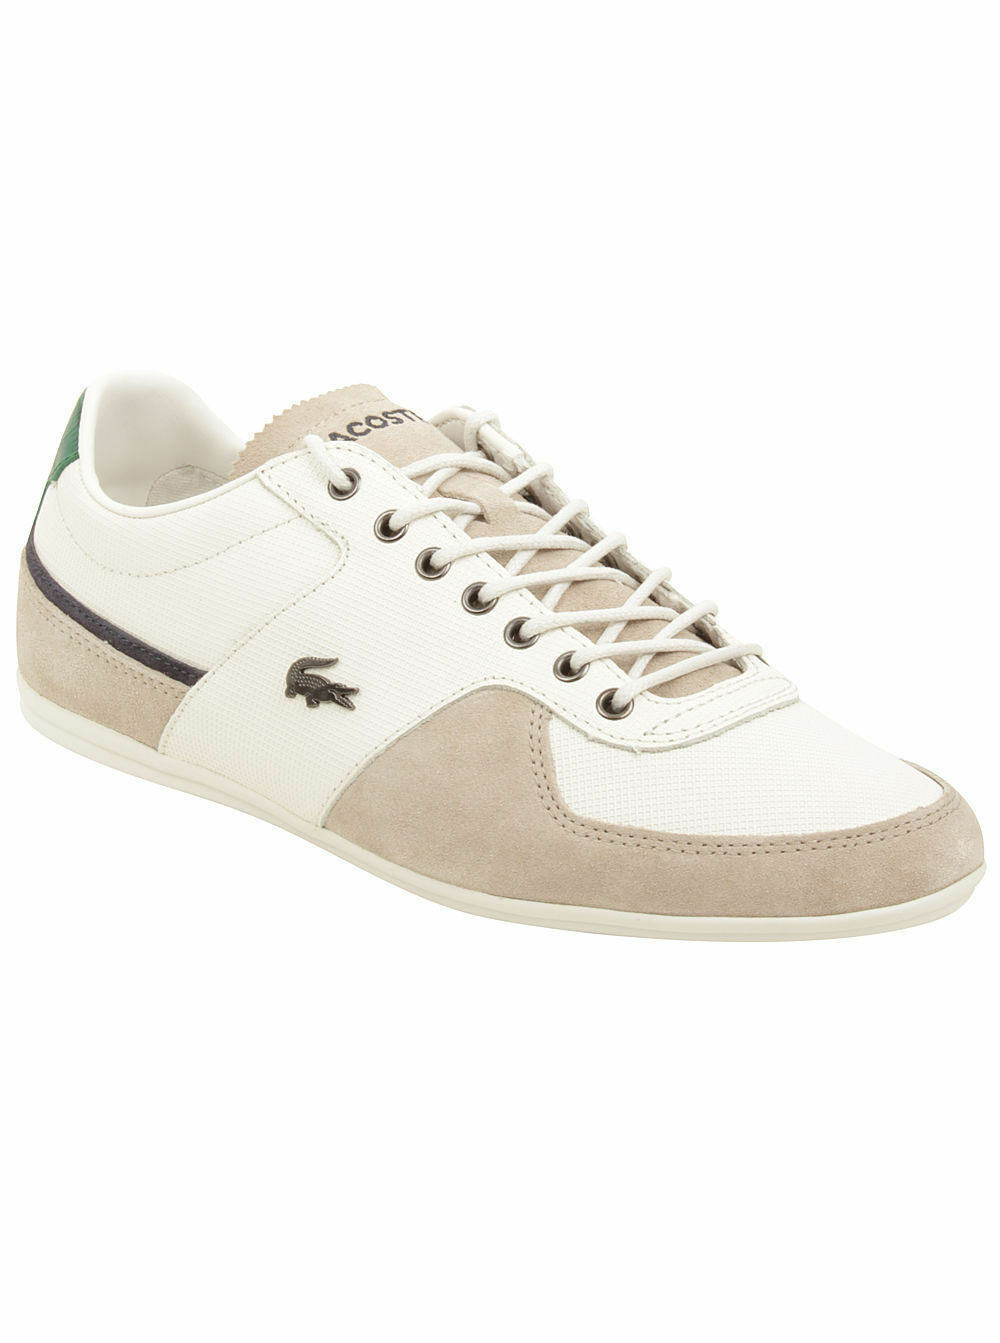 6acc00e8260687 NWT Lacoste Men Taloire 15 Sneakers Leather shoes shoes shoes Size ...